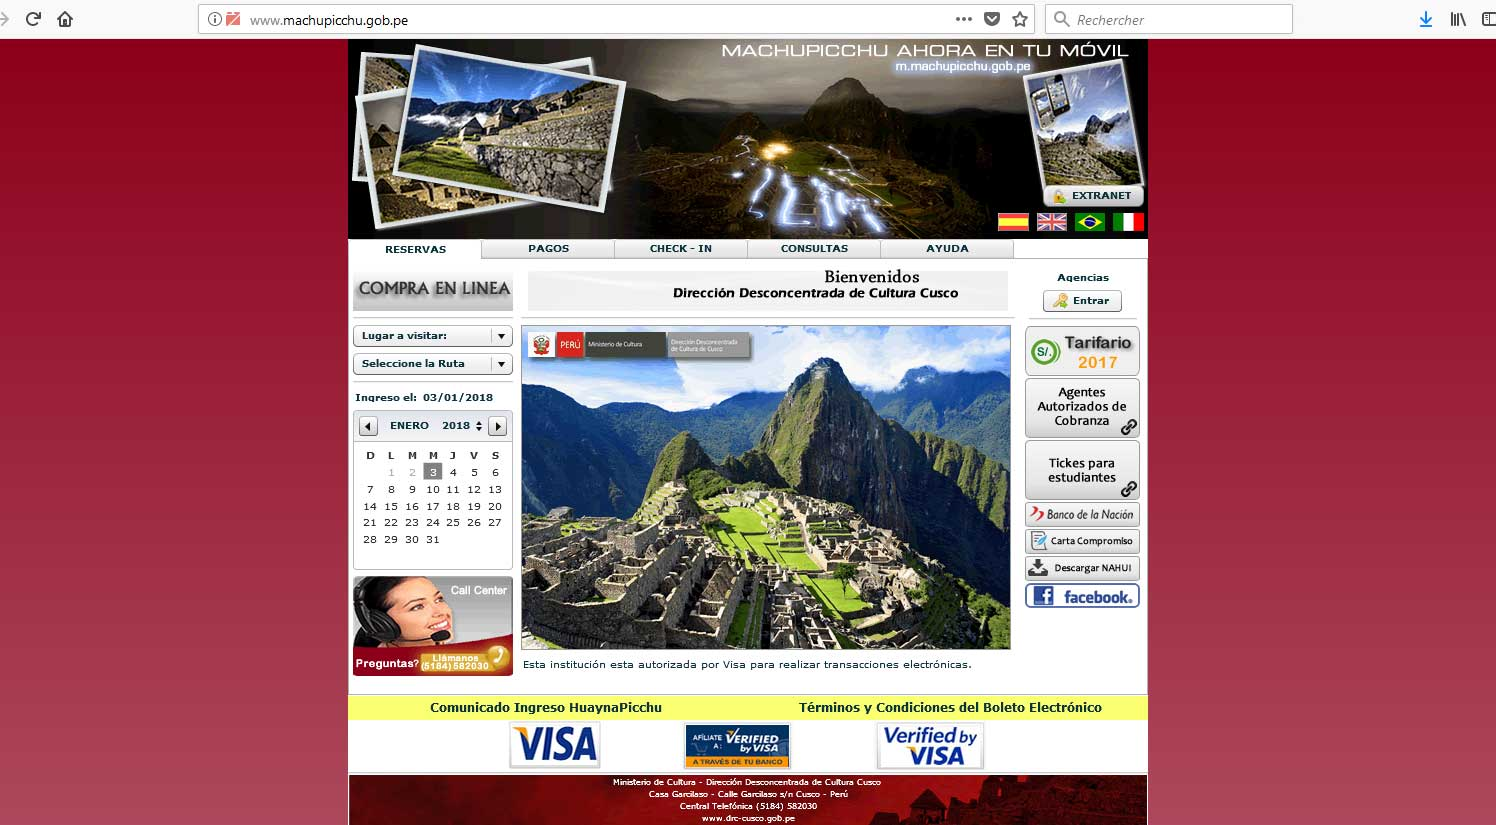 sensations voyage perou ticket billet machu picchu site officiel bon plan